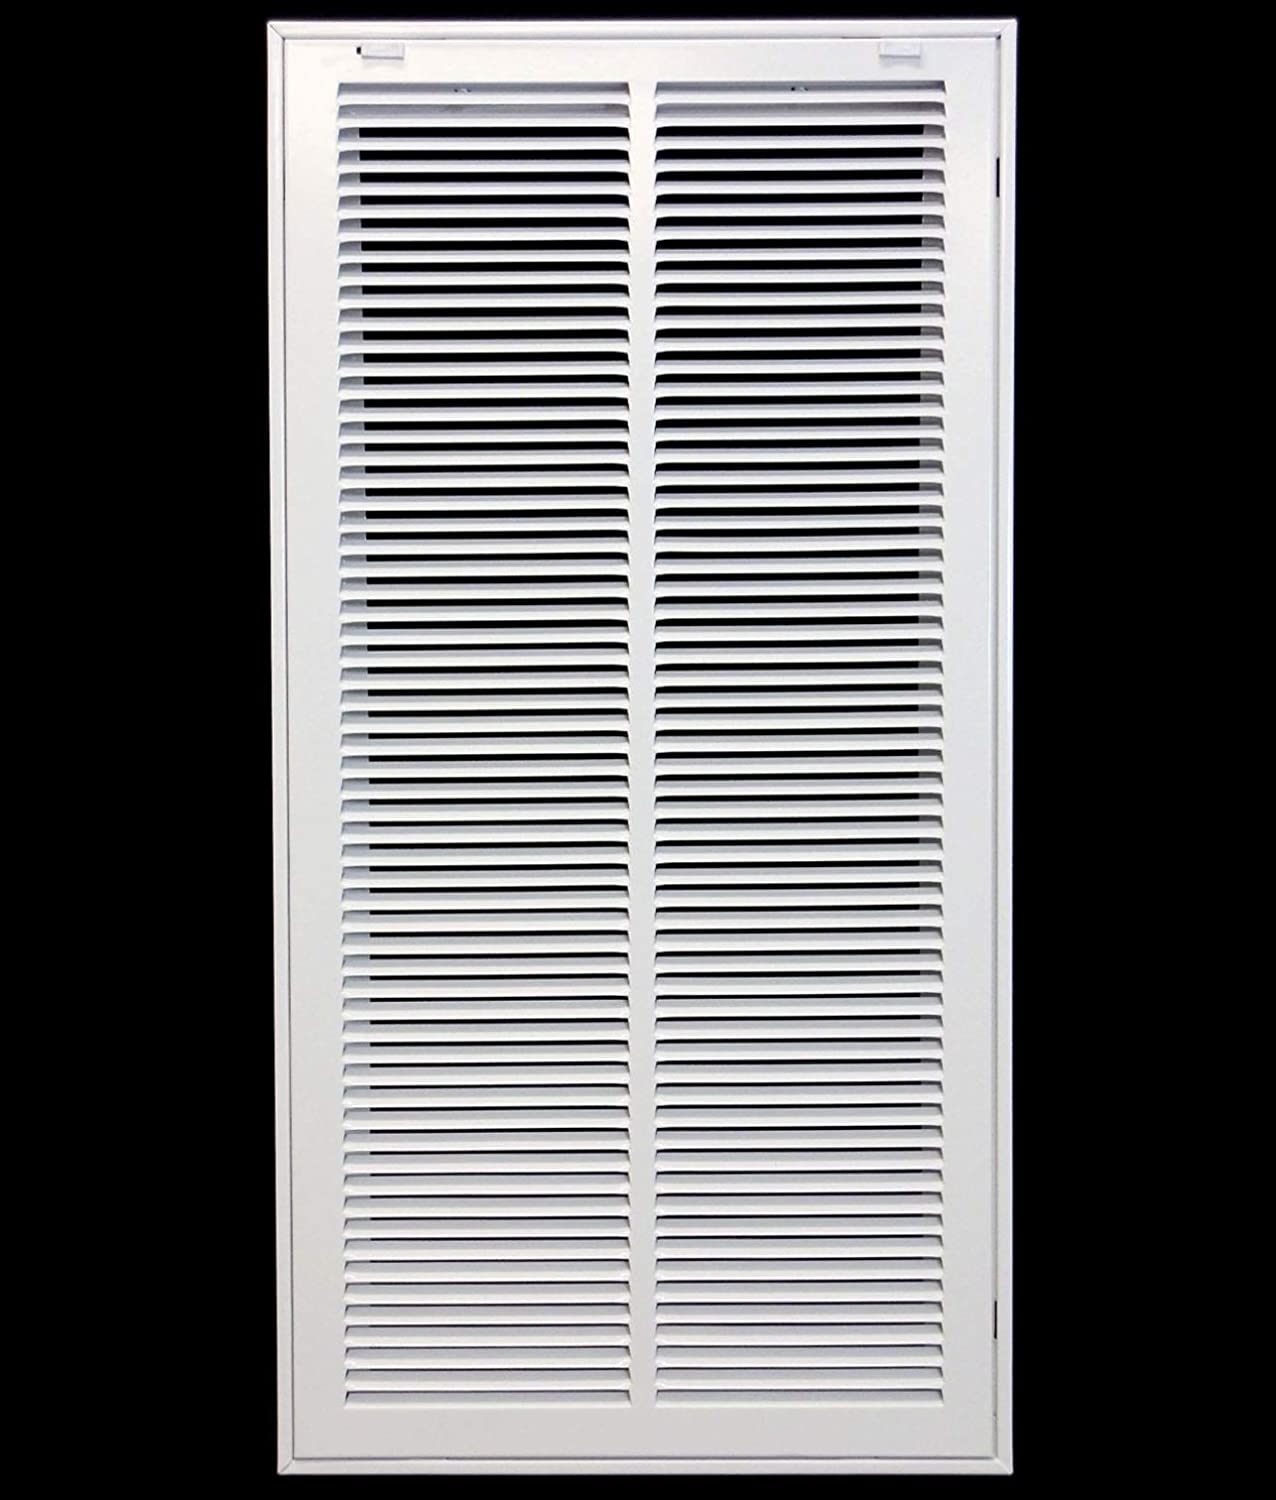 14 X 28 Steel Return Air Filter Grille for 1 Filter - Removable Face/Door - HVAC Duct Cover - Flat Stamped Face -White [Outer Dimensions: 15.75w X 29.75h]